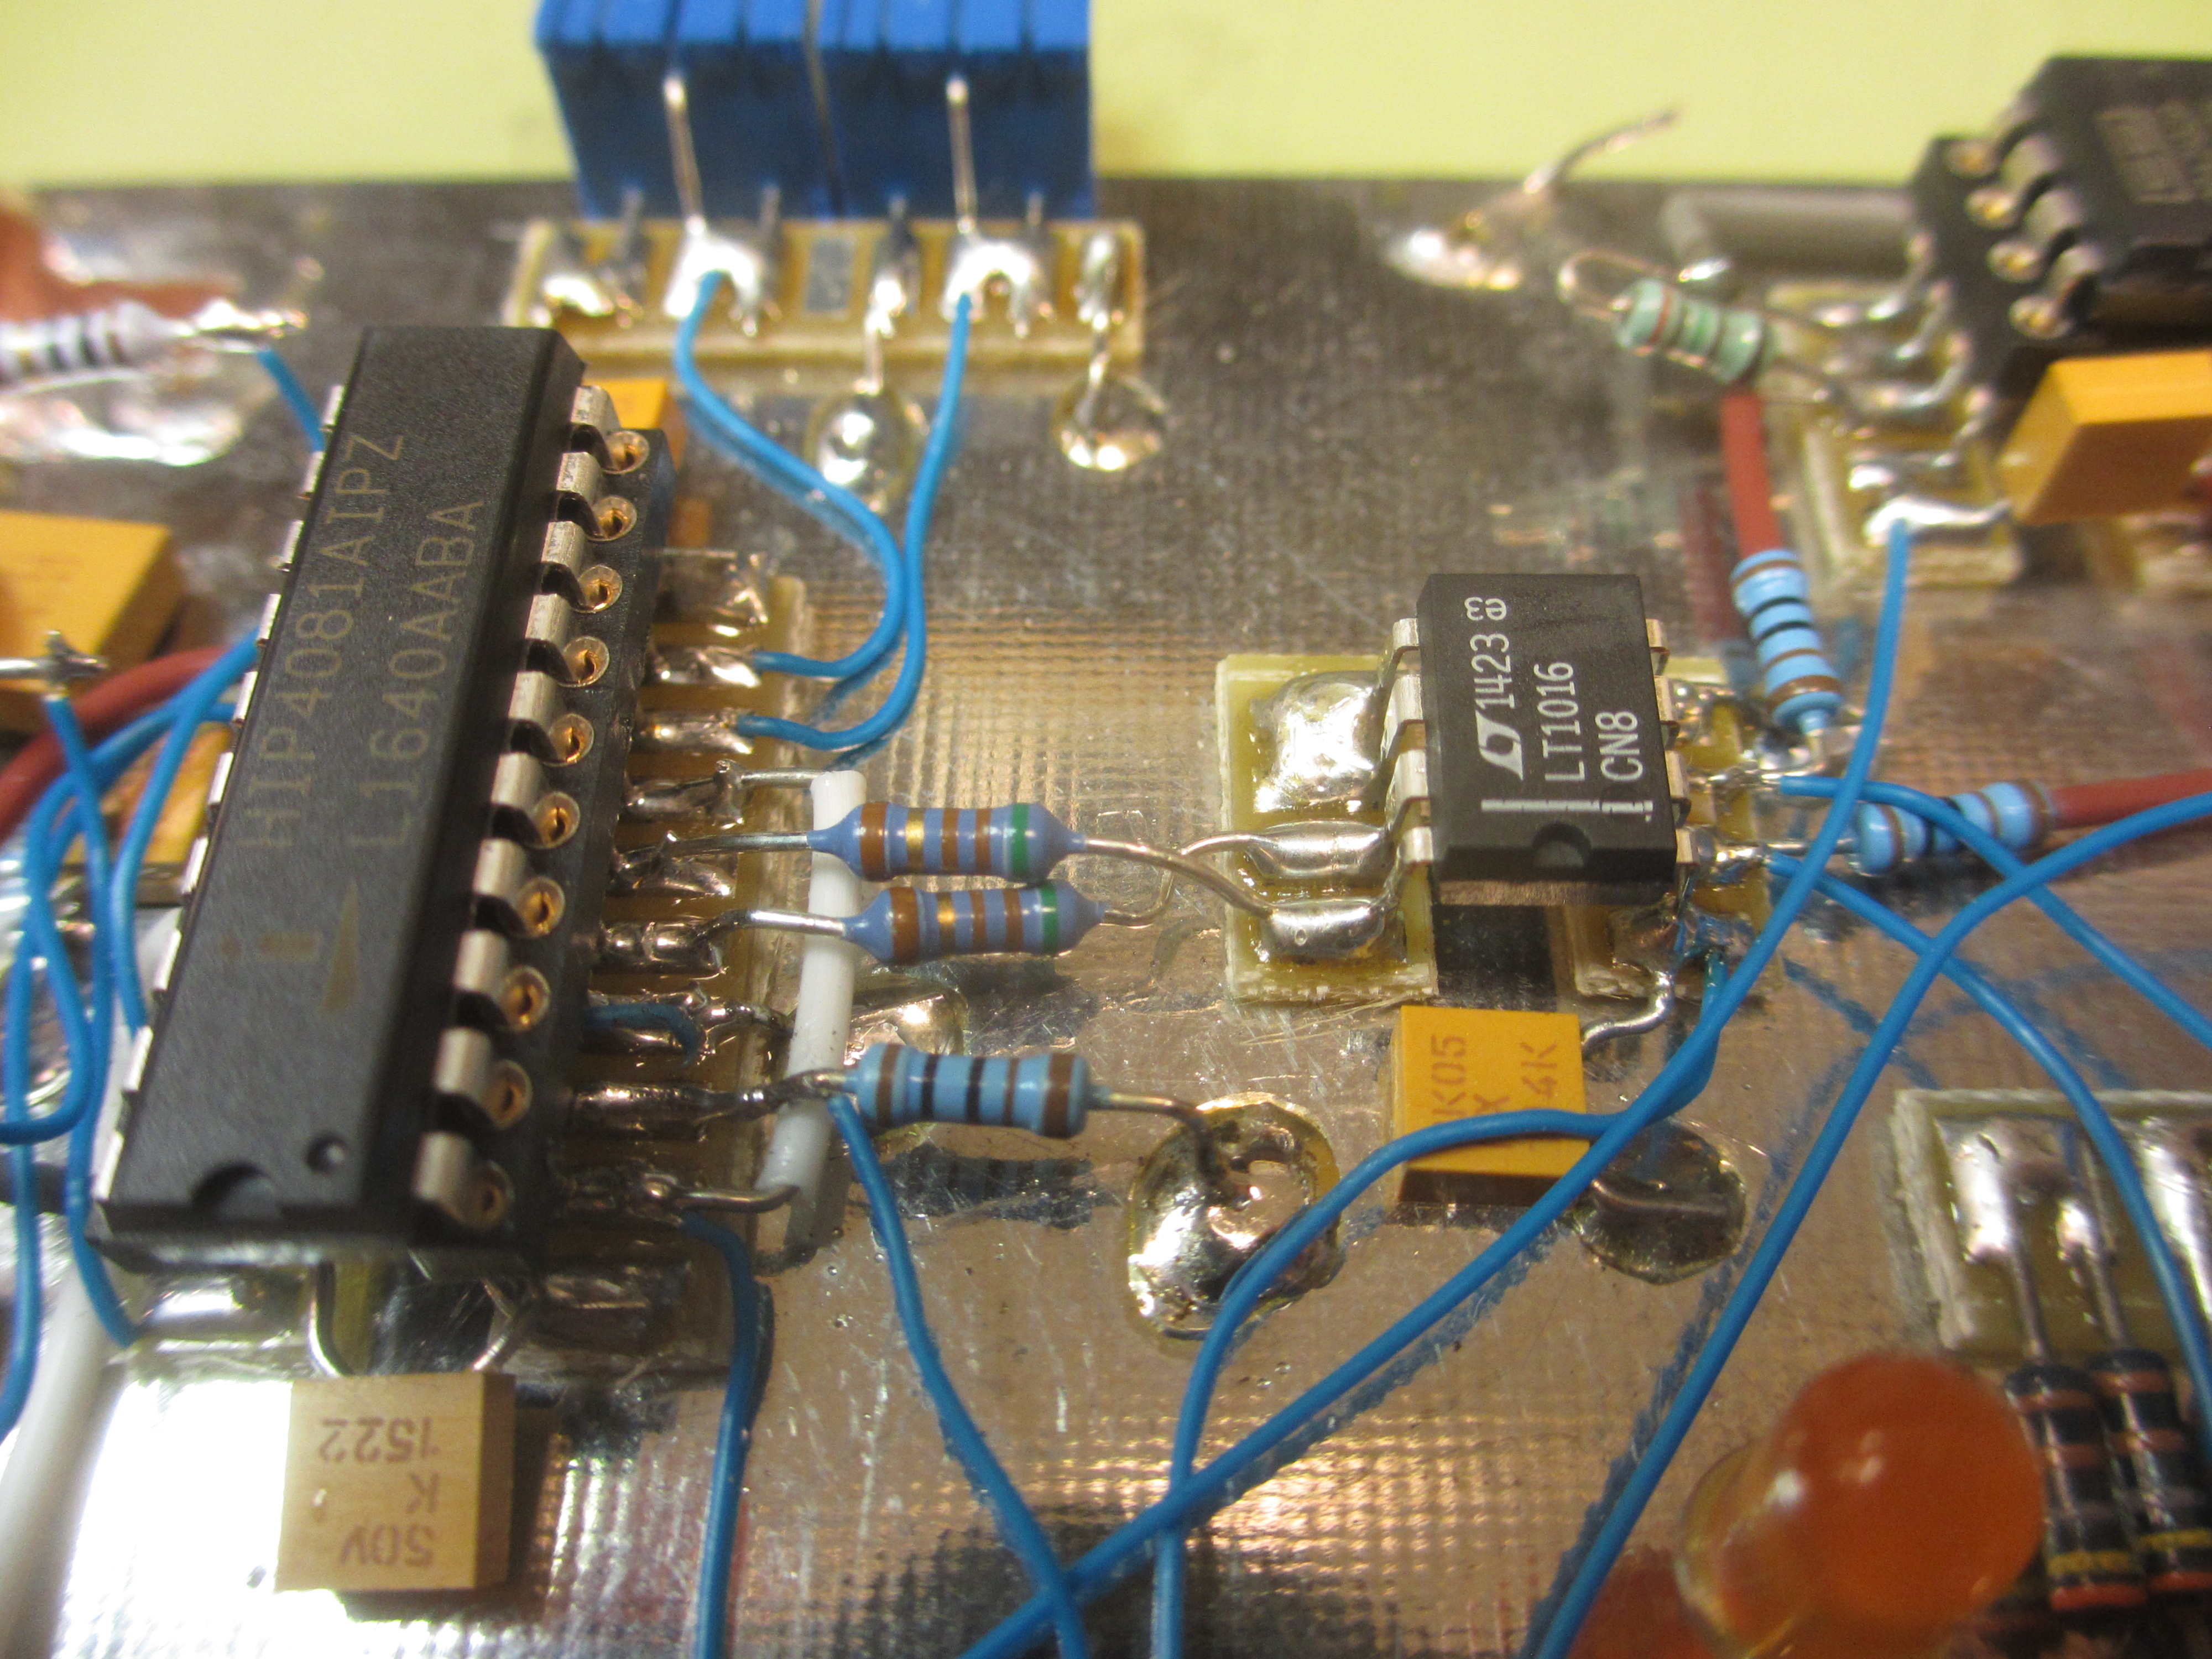 100w Class D Amplifier Simons Satcom Page Power Circuit Design Below You Can See That By Removing The Dil Socket Some Of Ringing Has Been Removed If Build This It Would Be A Good Idea To Do With